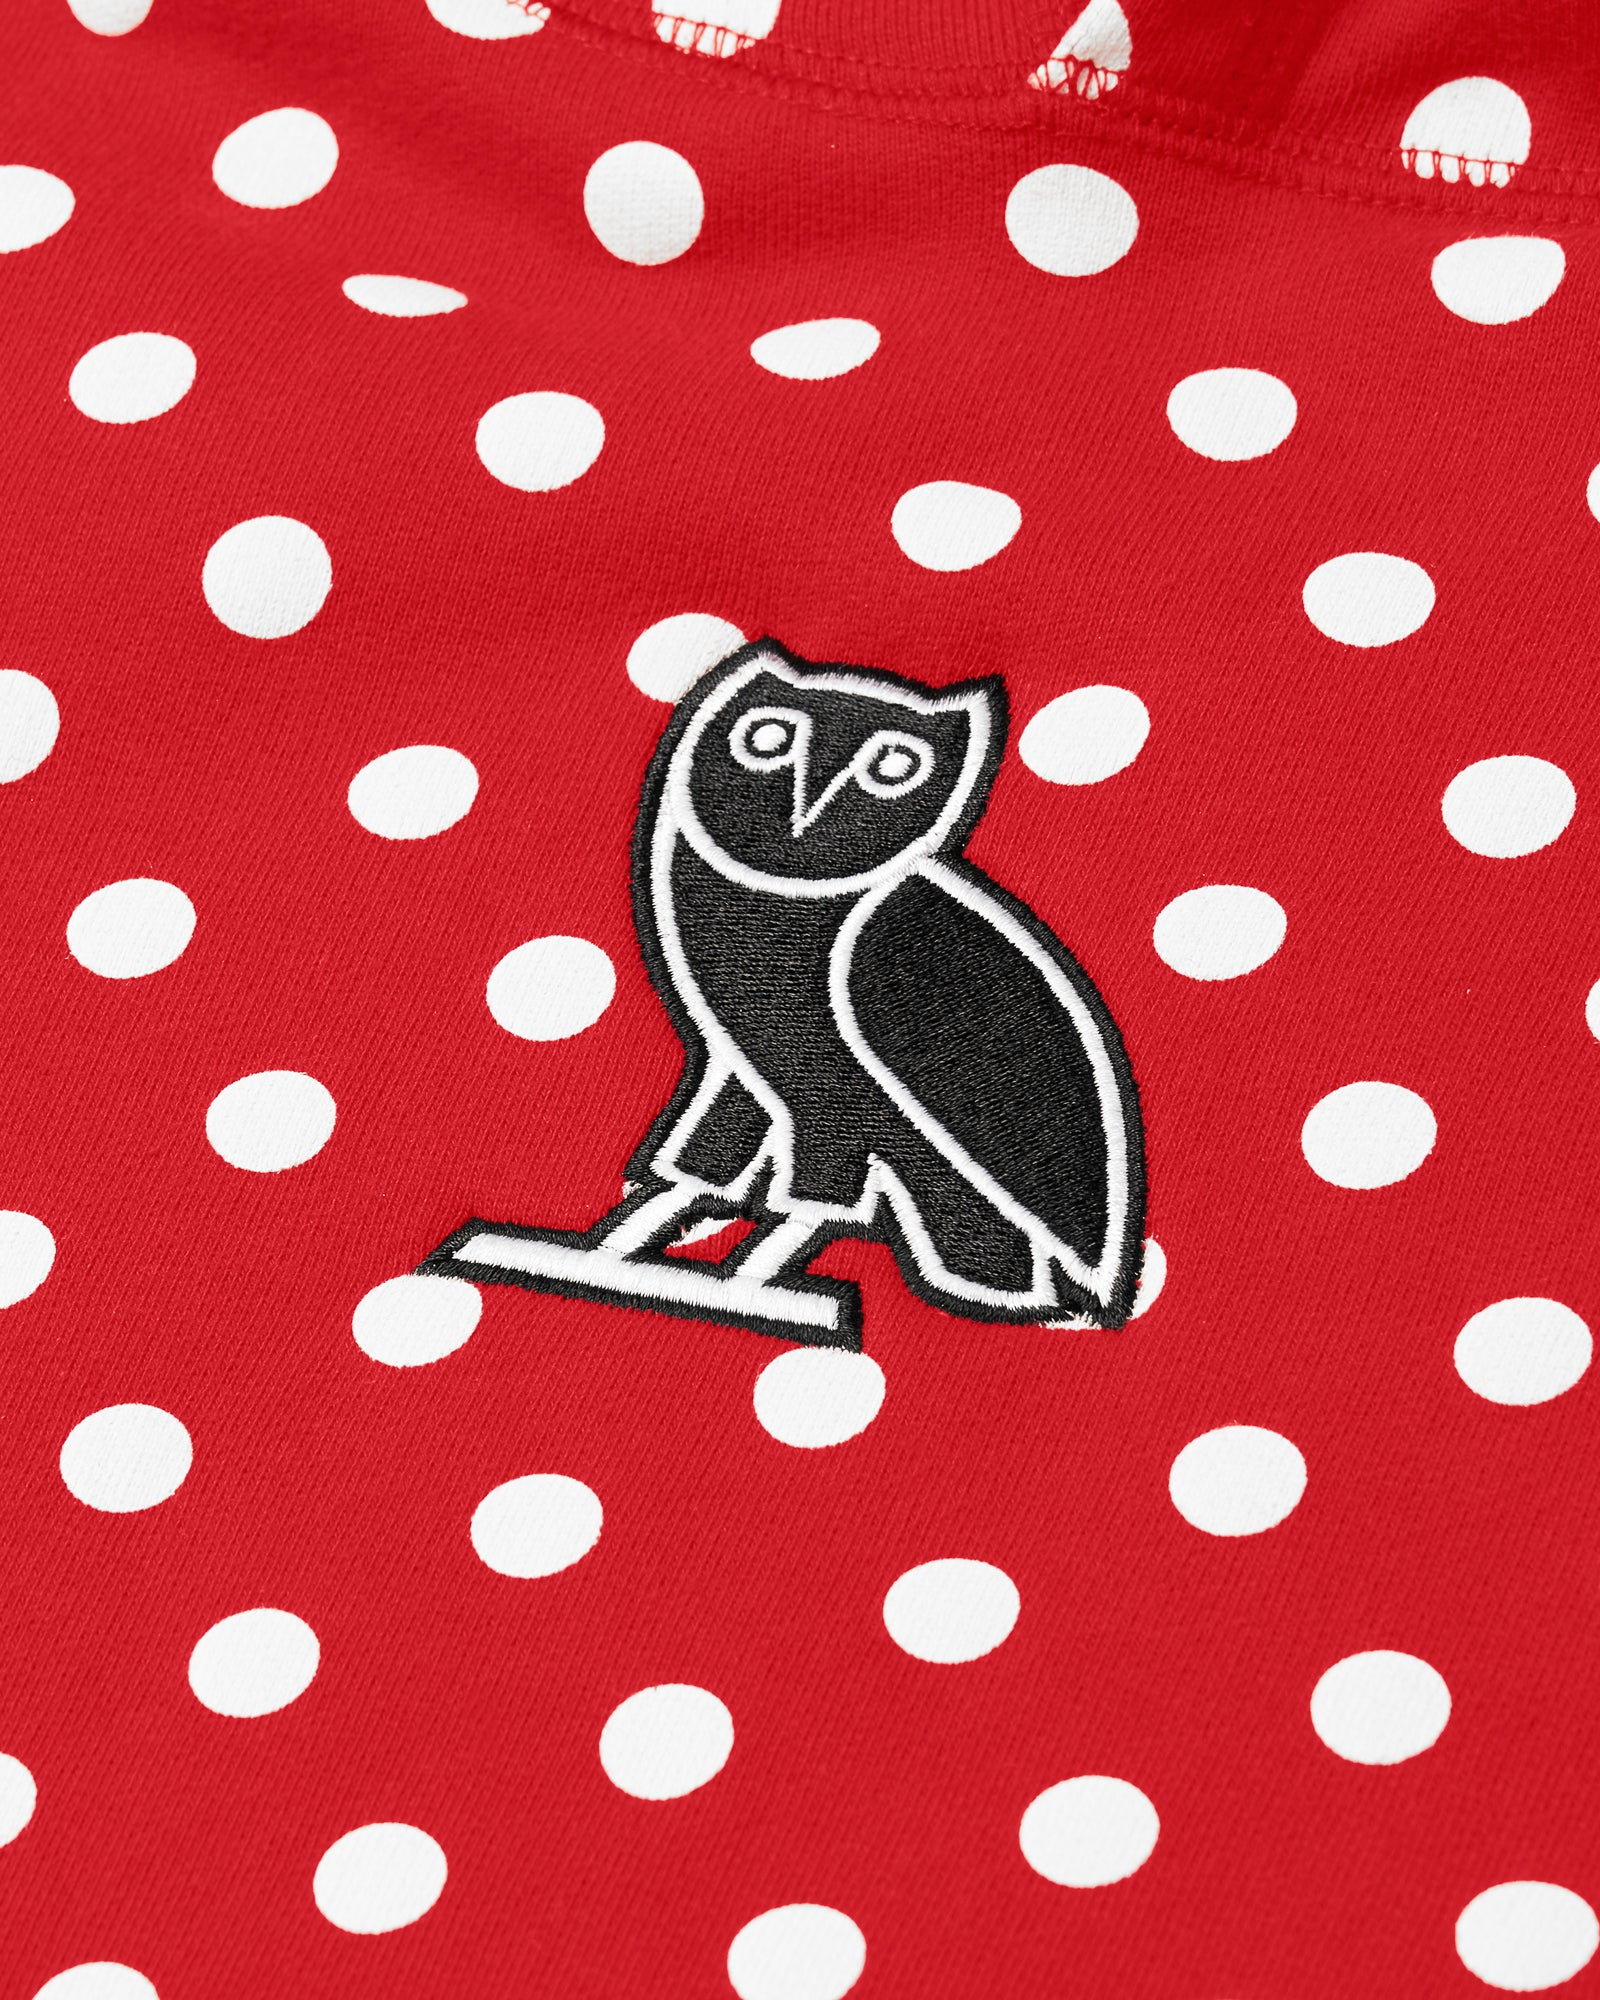 CLASSIC OWL HOODIE - RED POLKA DOT IMAGE #3